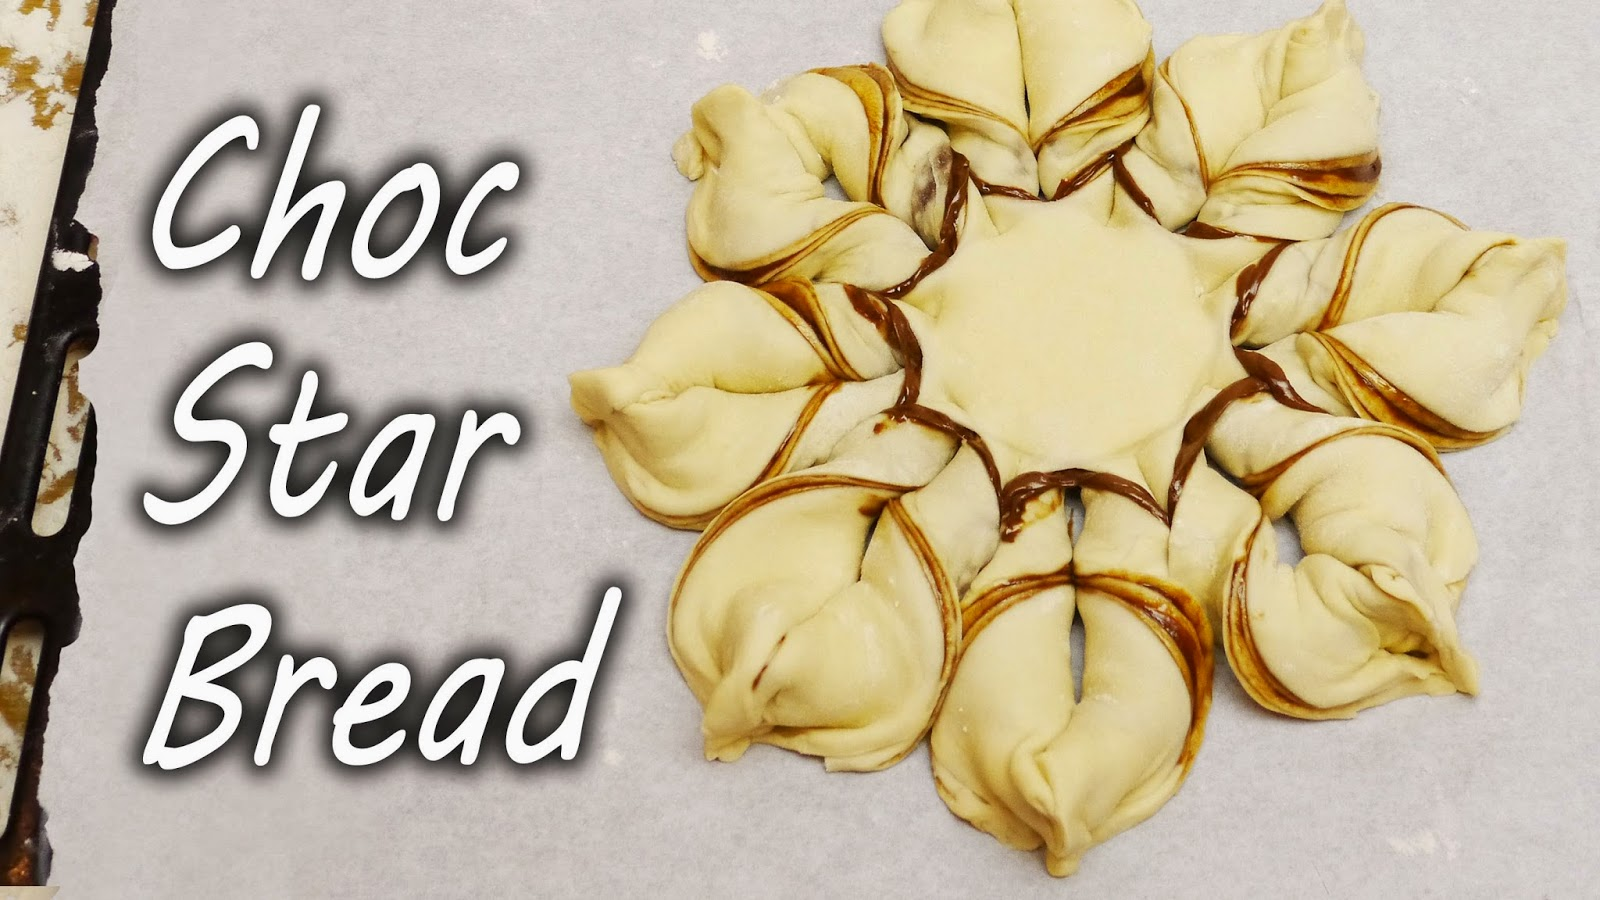 How to make chocolate star bread creative ideas - Make delicious sweet bread christmas ...